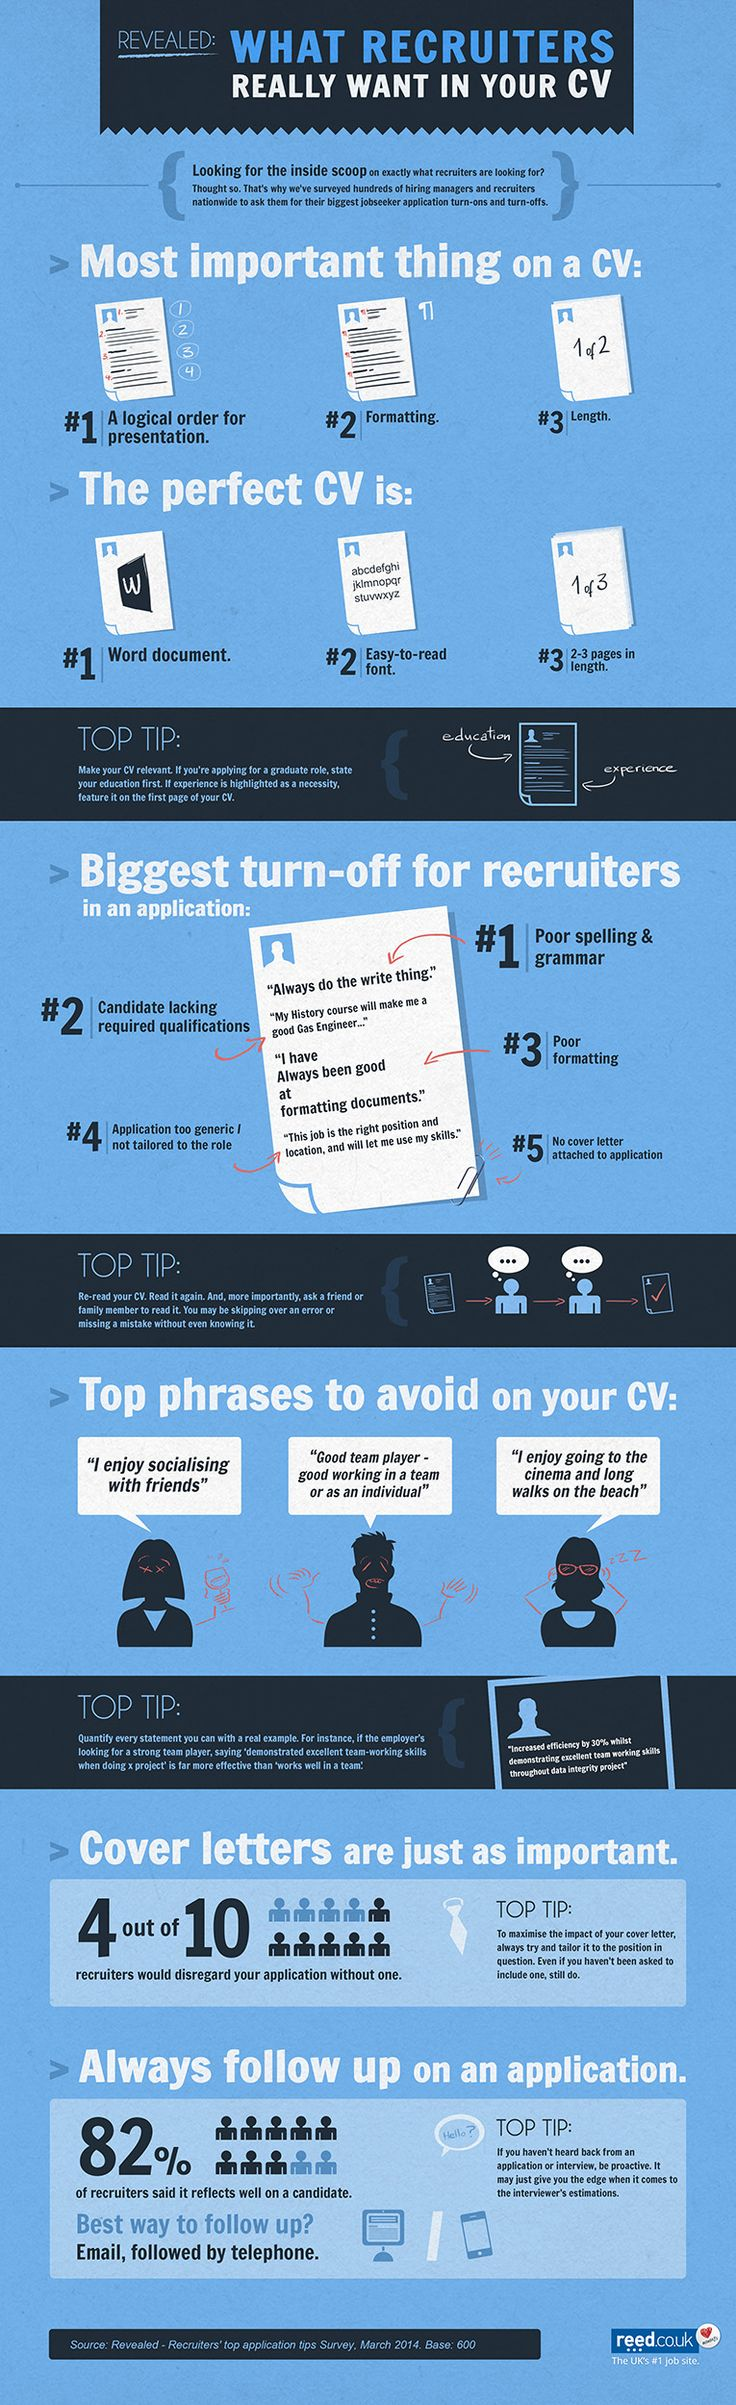 Revealed: What recruiters really want in your CV  #RePin by AT Social Media Marketing - Pinterest Marketing Specialists ATSocialMedia.co.uk